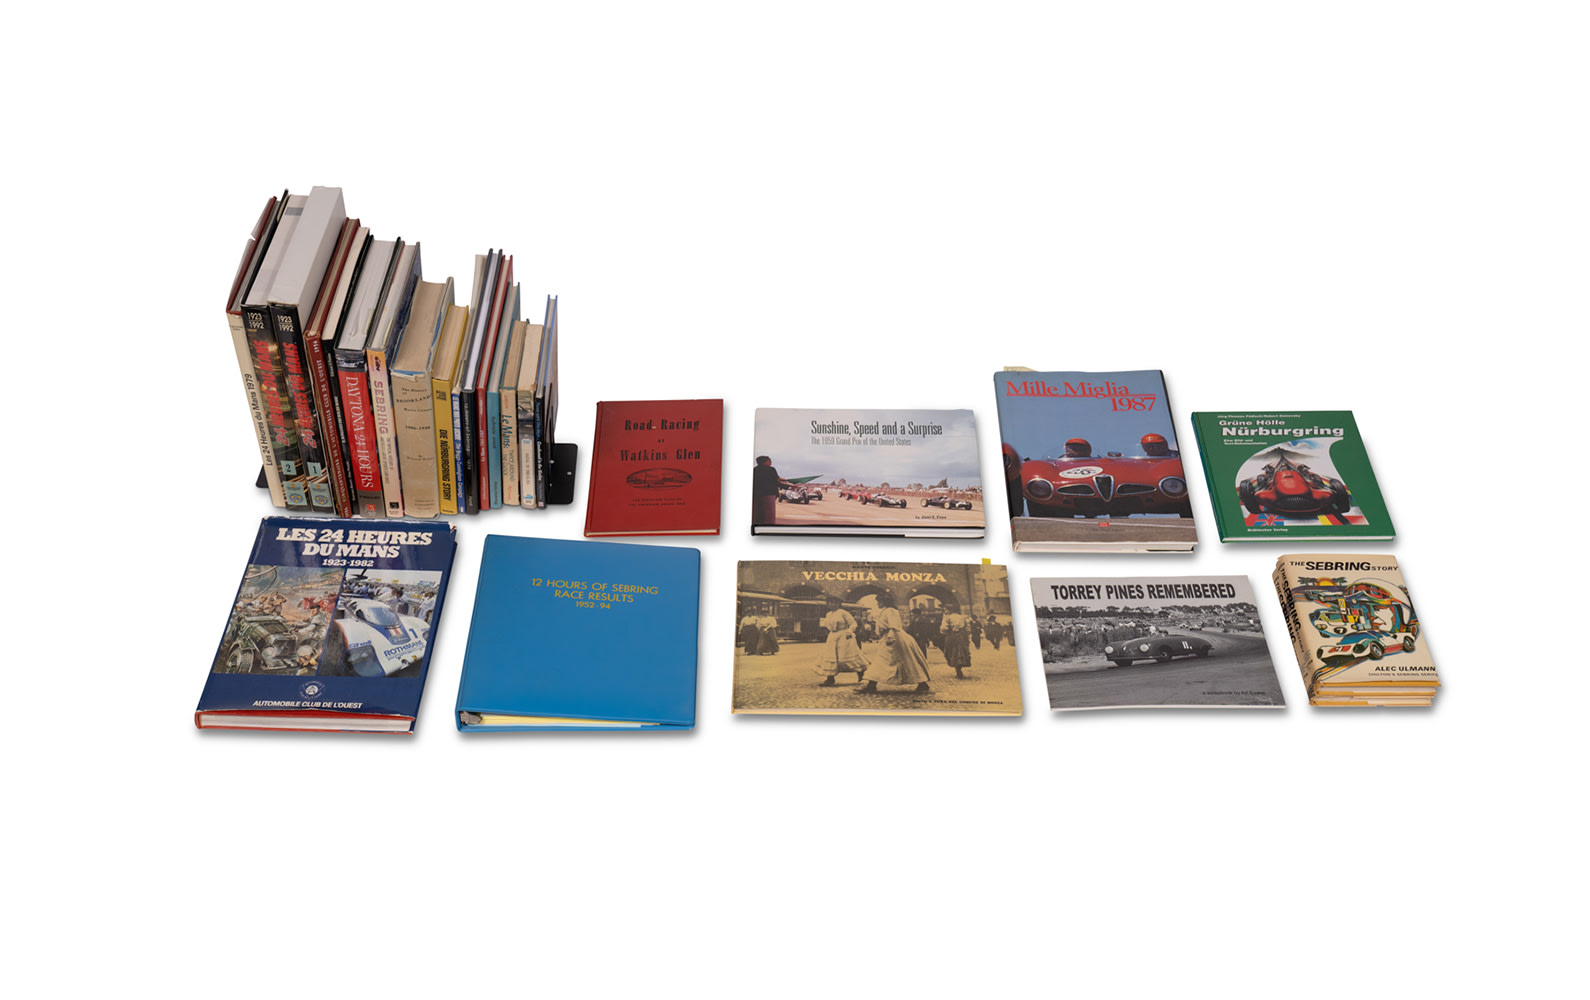 Assorted Books on Motor Racing Venues